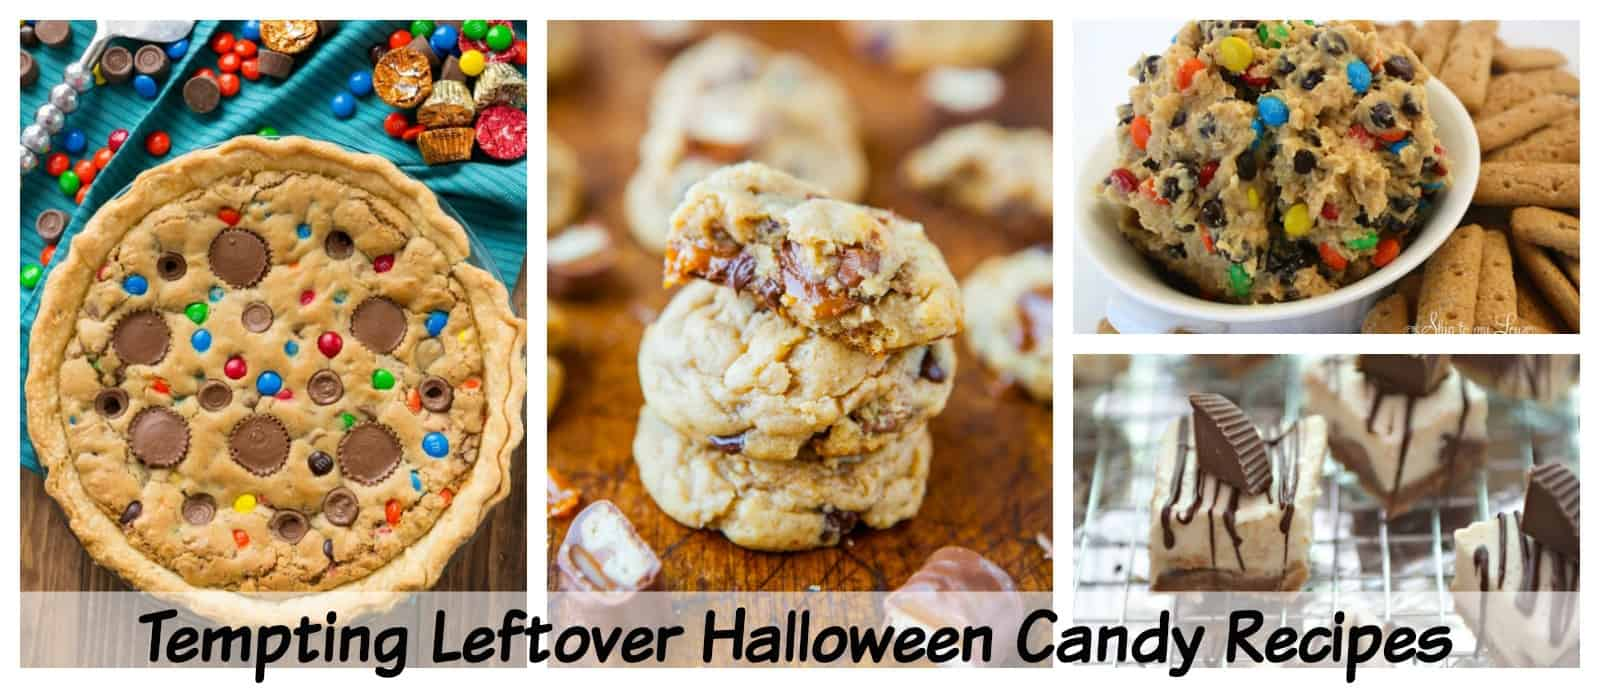 Truly Tempting Leftover Halloween Candy Recipes